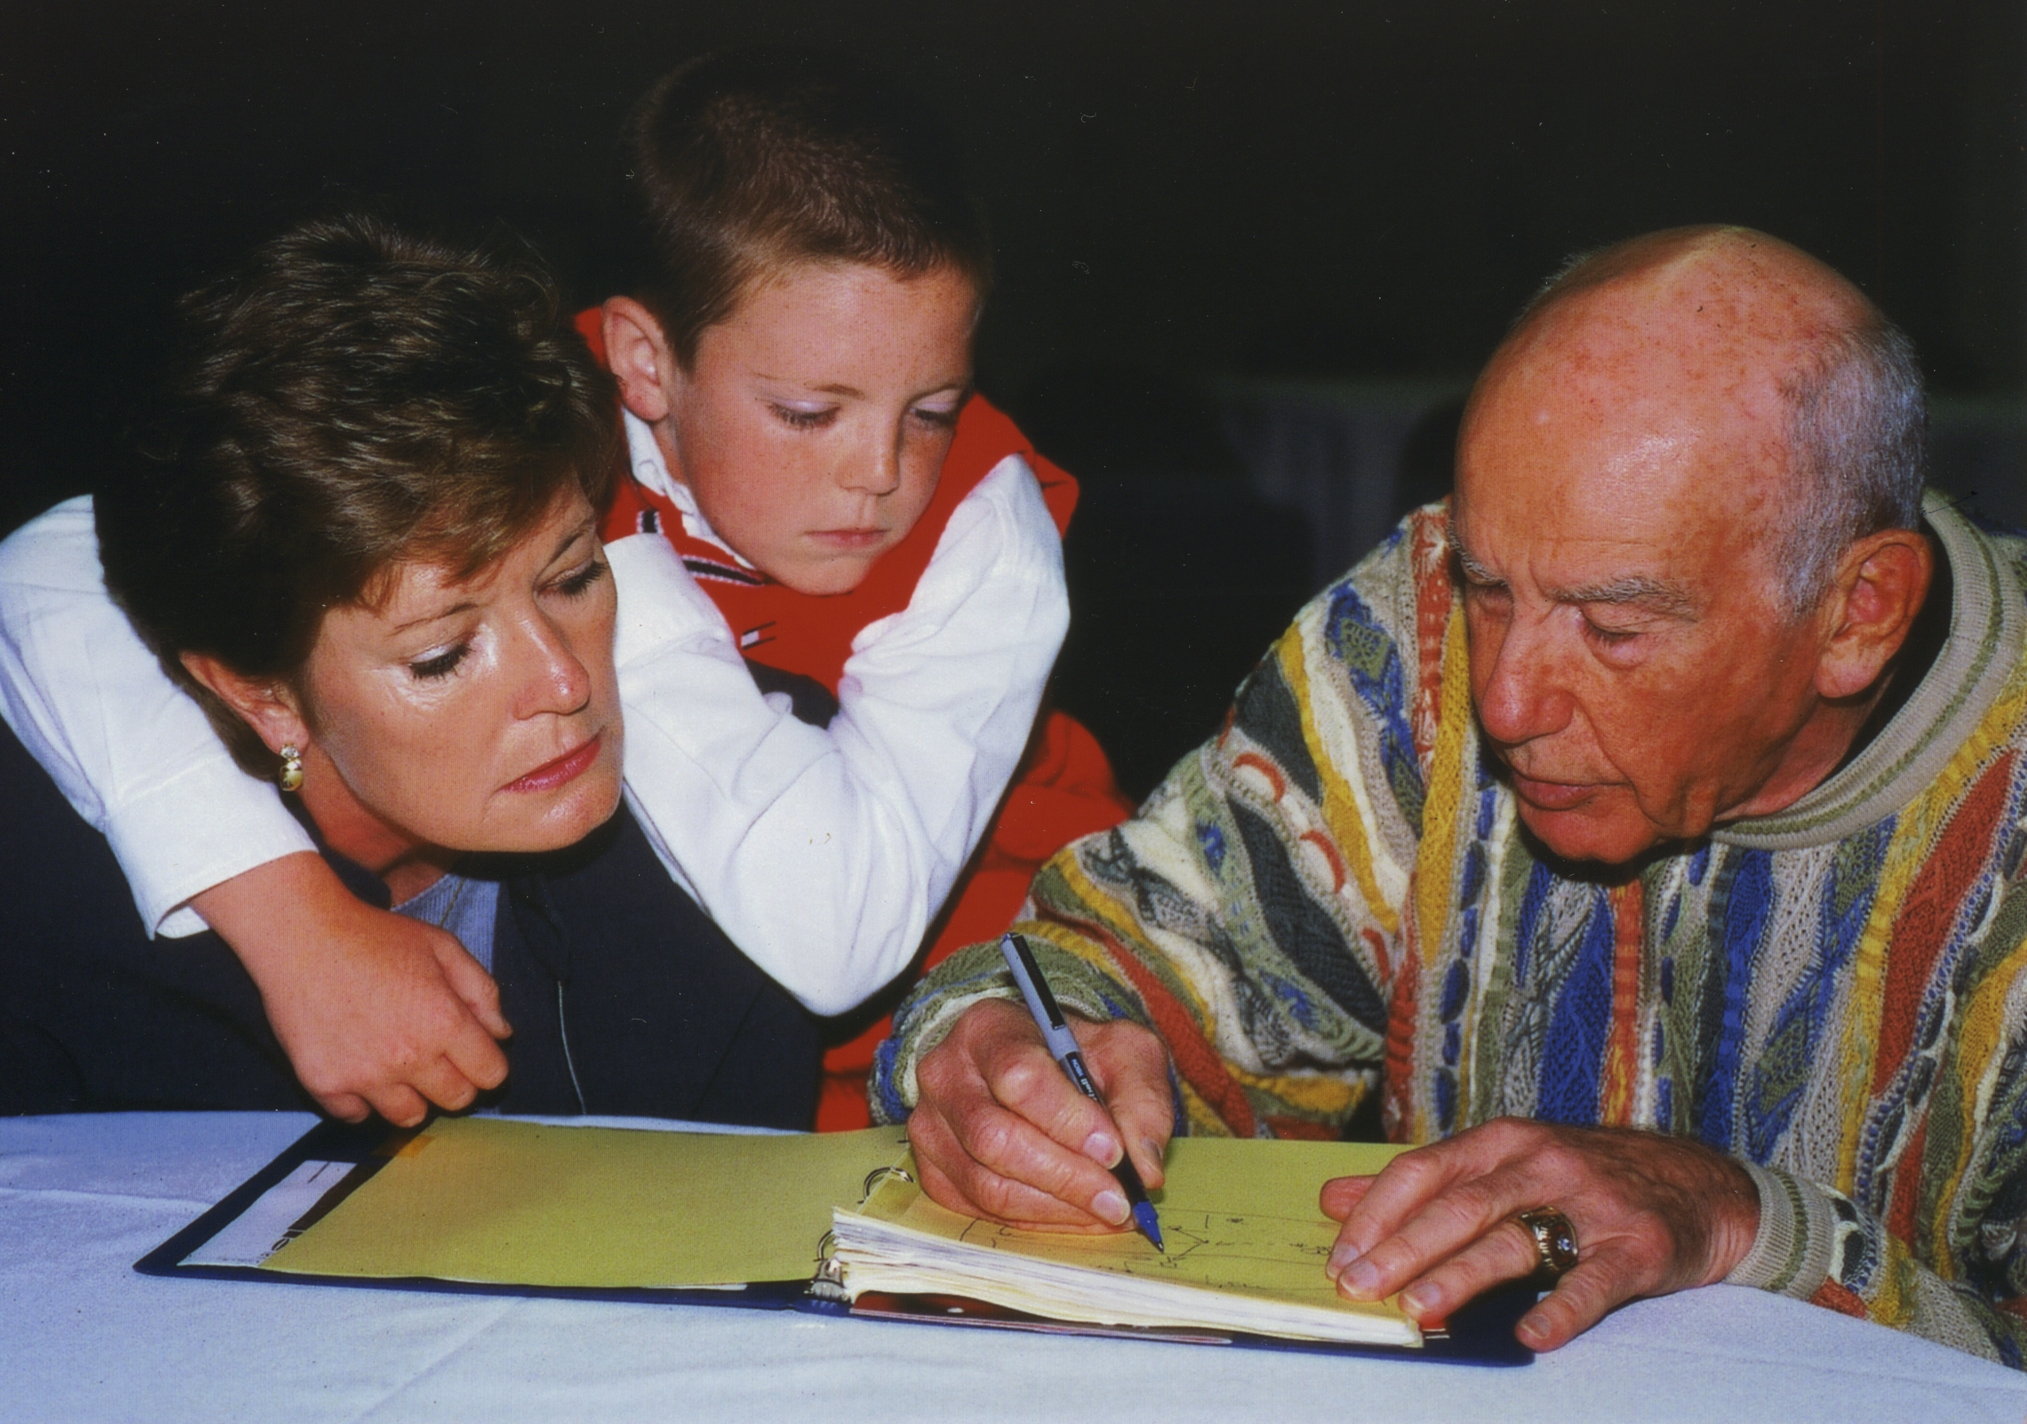 Dr. Jack Ramsay, right, signs an autograph at the Naismith Memorial Basketball Hall of Fame for ex-Tennessee coach and fellow Hall of Famer Pat Summitt, left, back in 2000. Ramsay, the ex-Braves coach who won an NBA title with Portland and later became a respected broadcaster for more than 20 years, died at age 89 on Monday. (AP Photo)